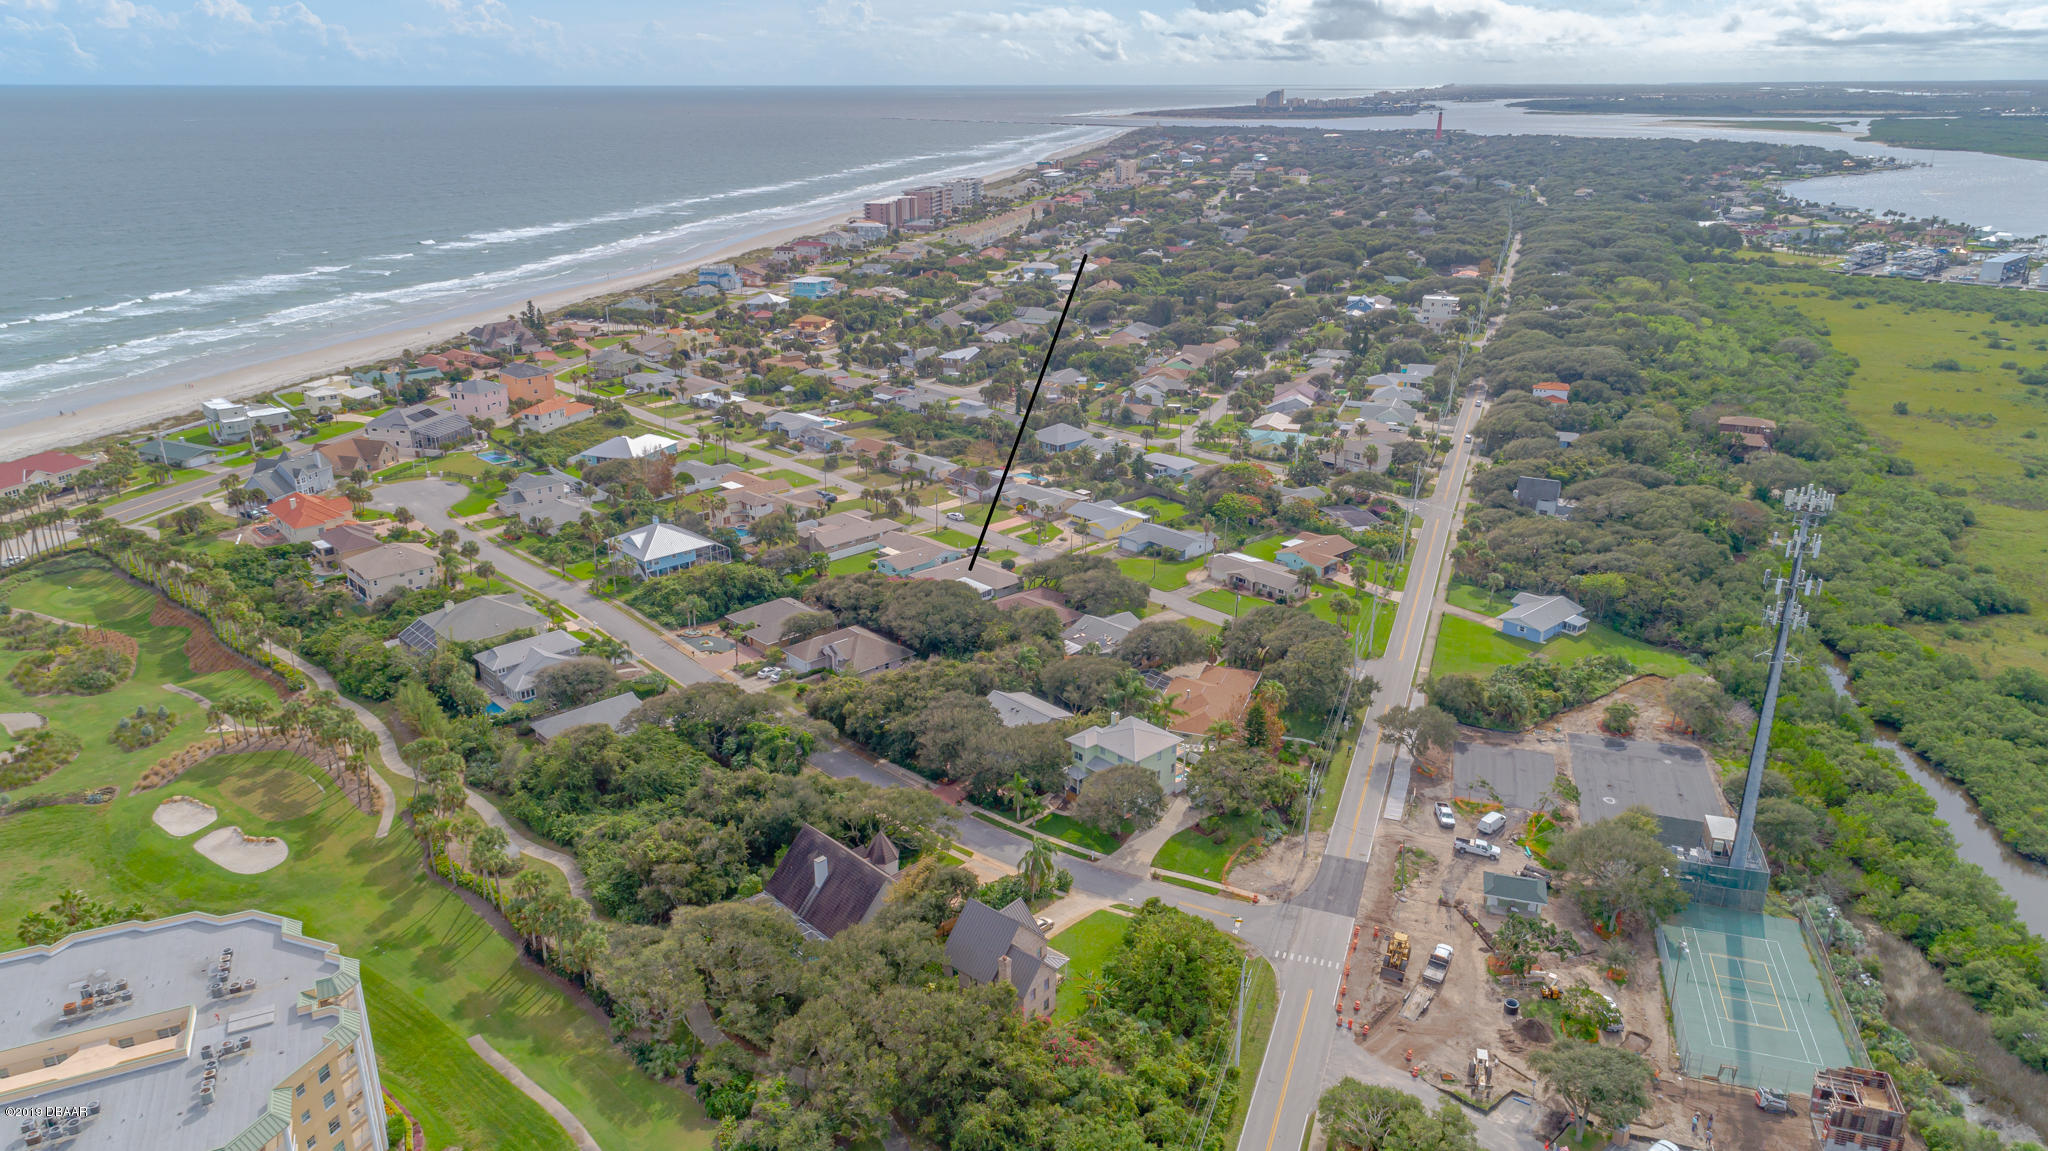 80 Cindy Ponce Inlet - 43